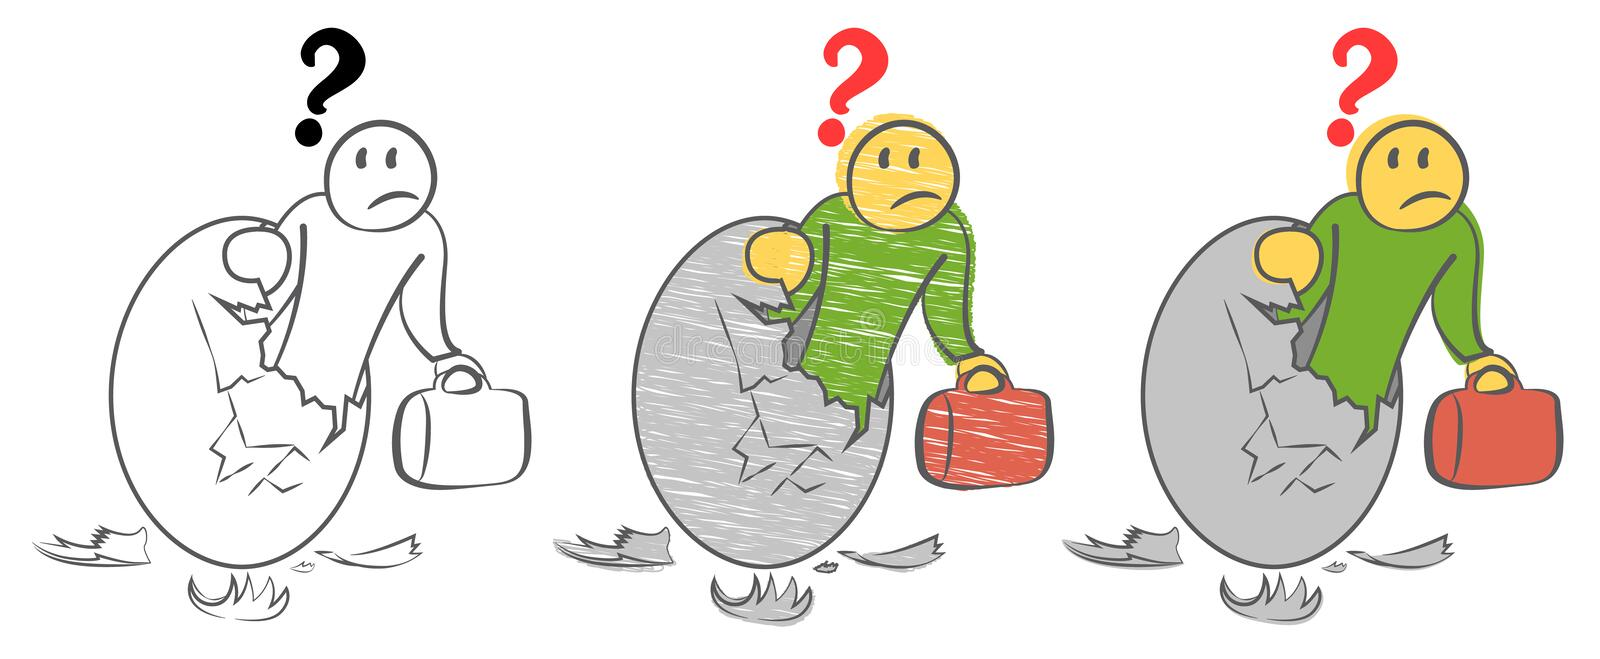 Frightened person looks from inside a giant golden egg with a broken top. Student looking for a job. Joining business world. royalty free illustration